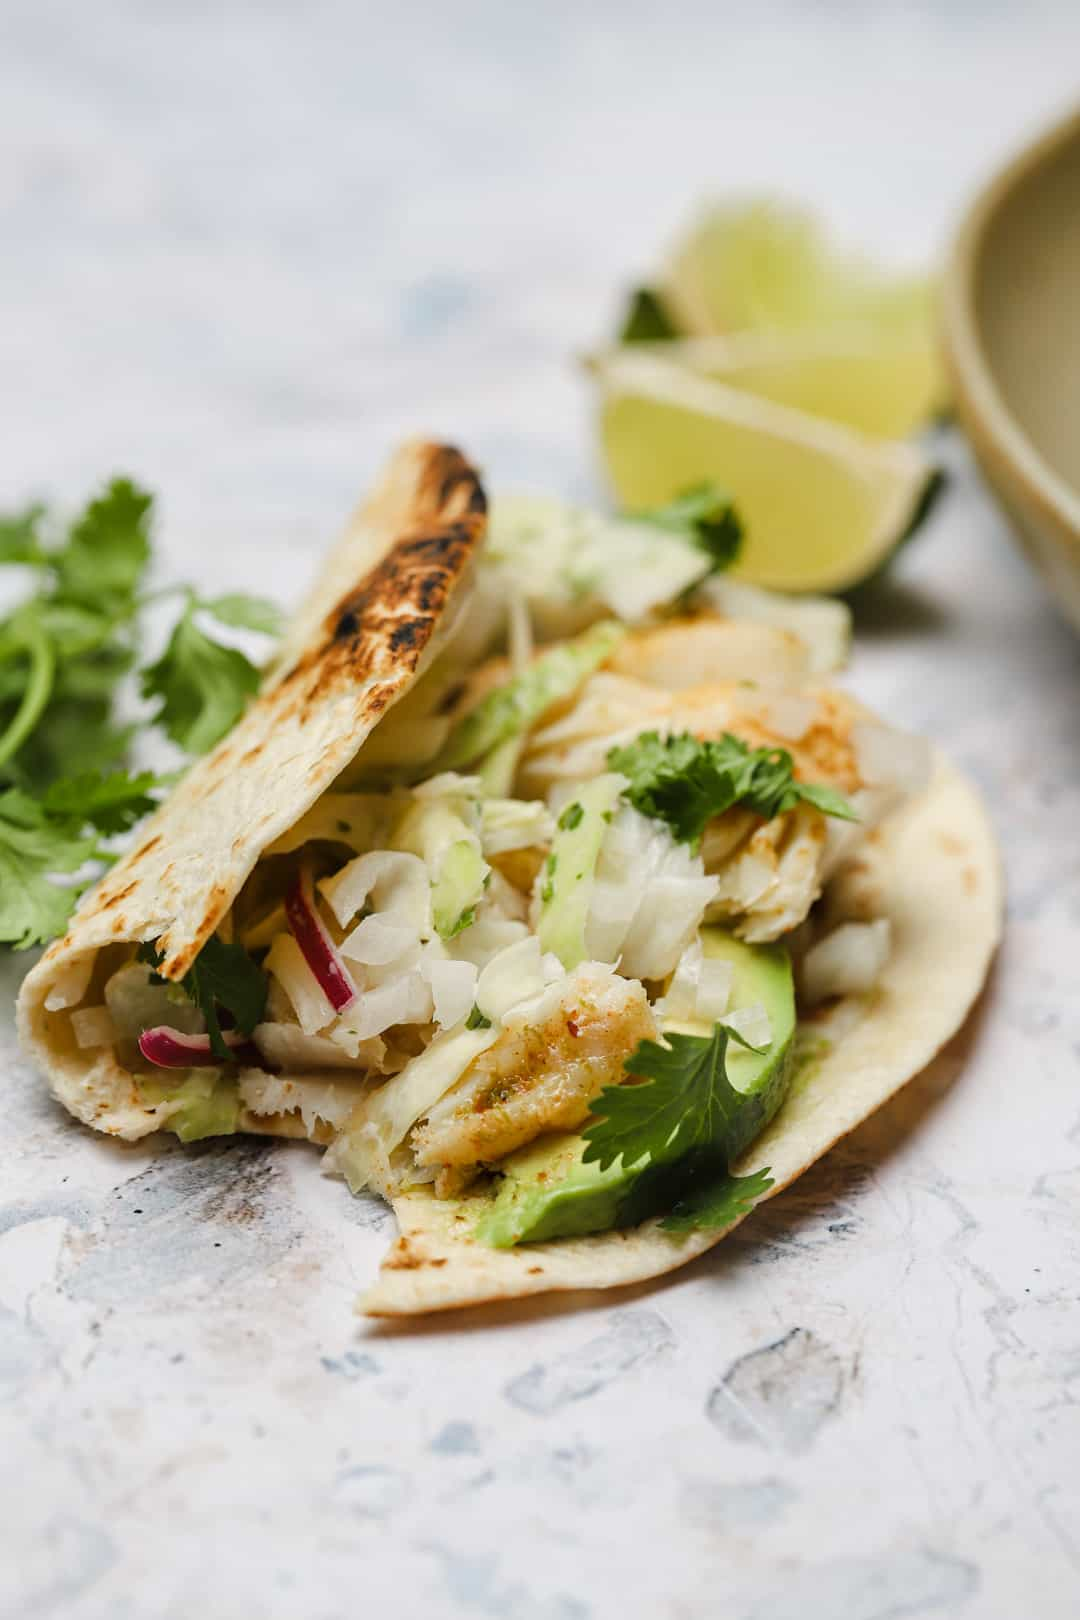 Grilled fish tacos with cabbage slaw and cilantro